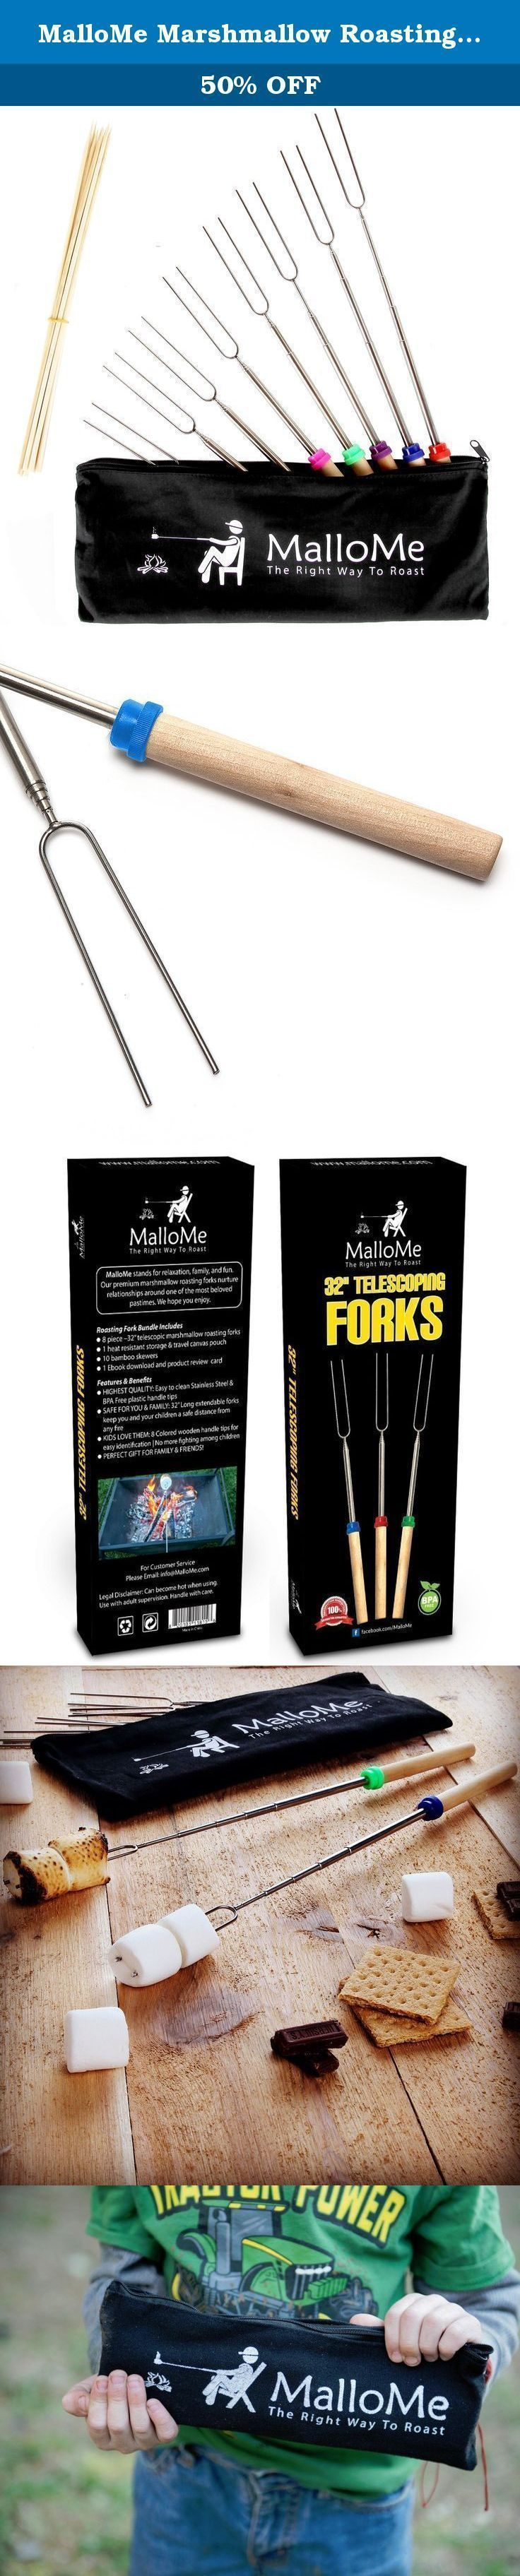 MalloMe Marshmallow Roasting Sticks Set of 8 Telescoping Smores Skewers & Hot Dog Forks 32 Inch Patio Fire Pit Accessories Camping Cookware Campfire Cooking Kids Fireplace Accesories - FREE Canvas Pouch, 10 Bamboo Sticks & Marshmallow Sticks Ebook. THROW AWAY THOSE SHORT & CLUNKY 22 INCH ROASTING STICKS & GET YOUR FIRE PIT READY! THE BEST MARSHMALLOW ROASTING FORKS ARE FINALLY HERE MalloMe Marshmallow Roasting Sticks | 32